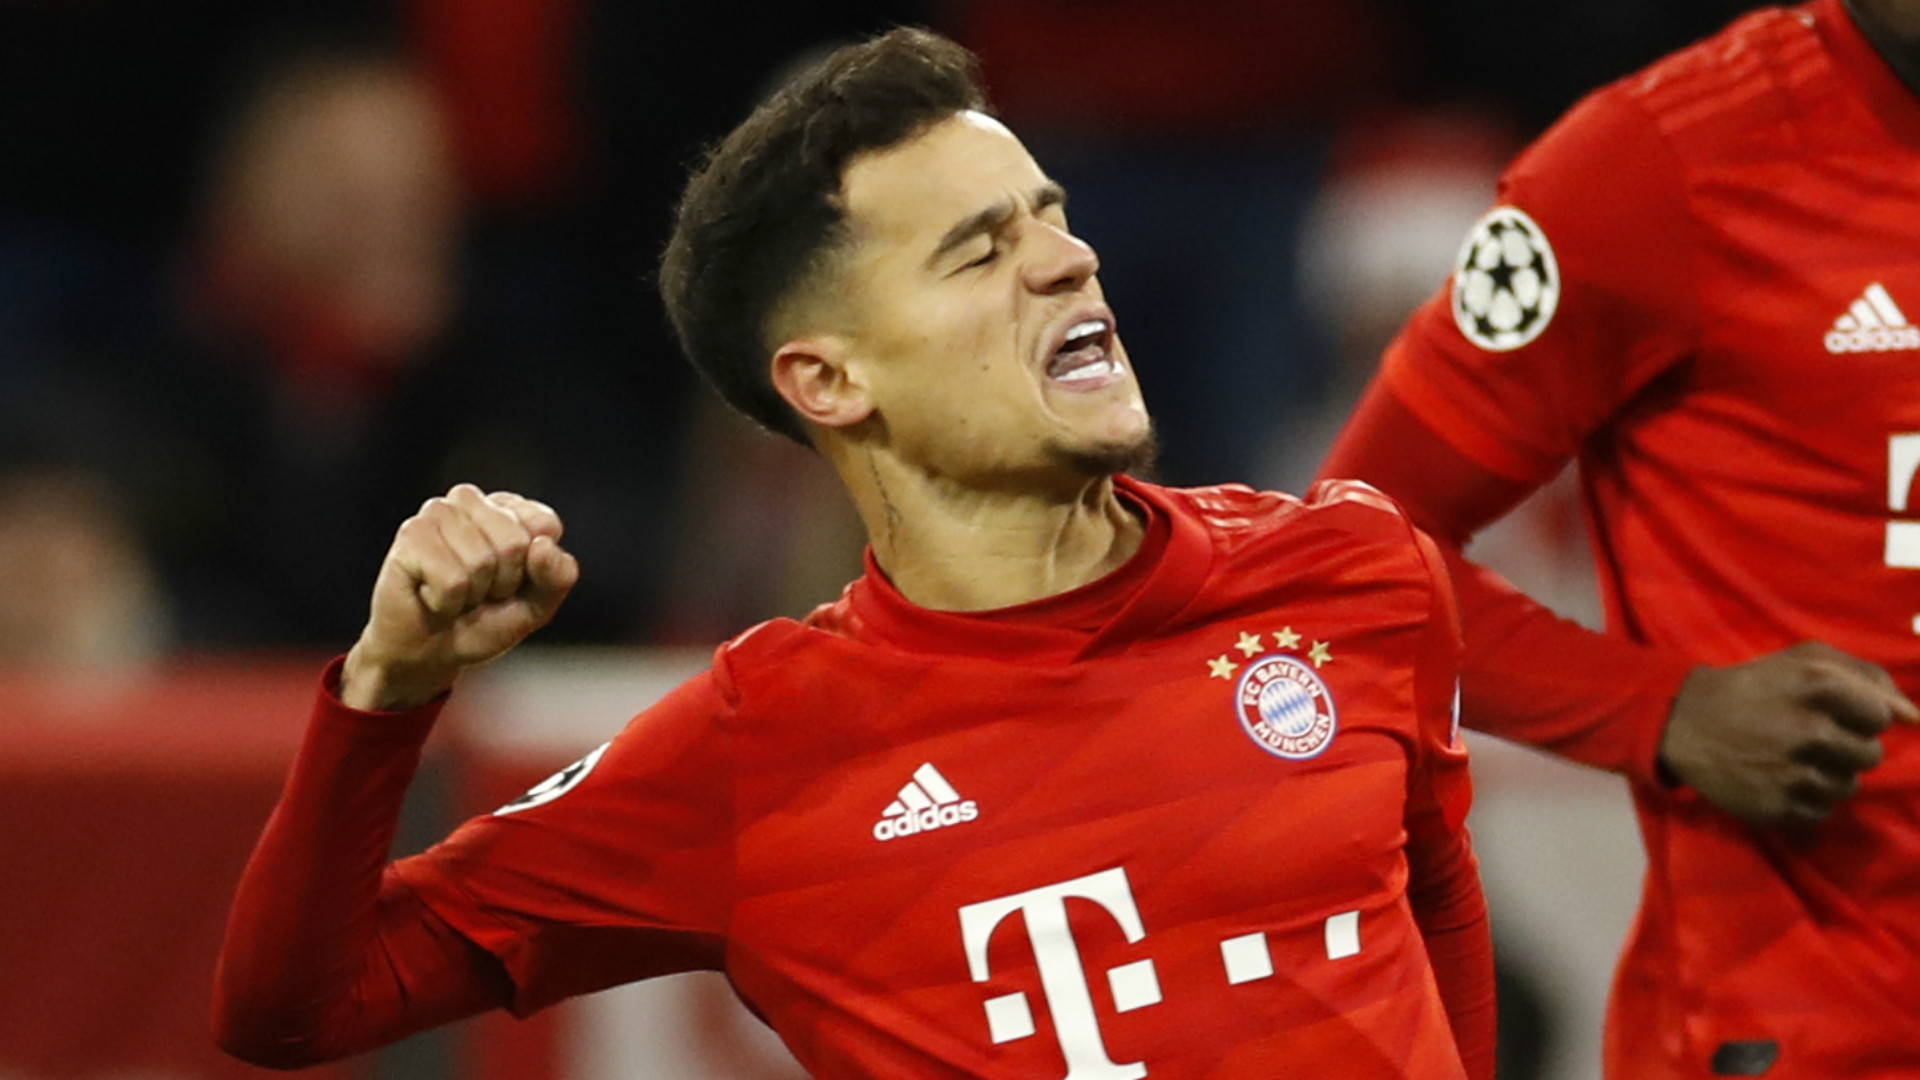 'Coutinho is a phenomenon' - Thiago hoping Bayern keep hold of on-loan star